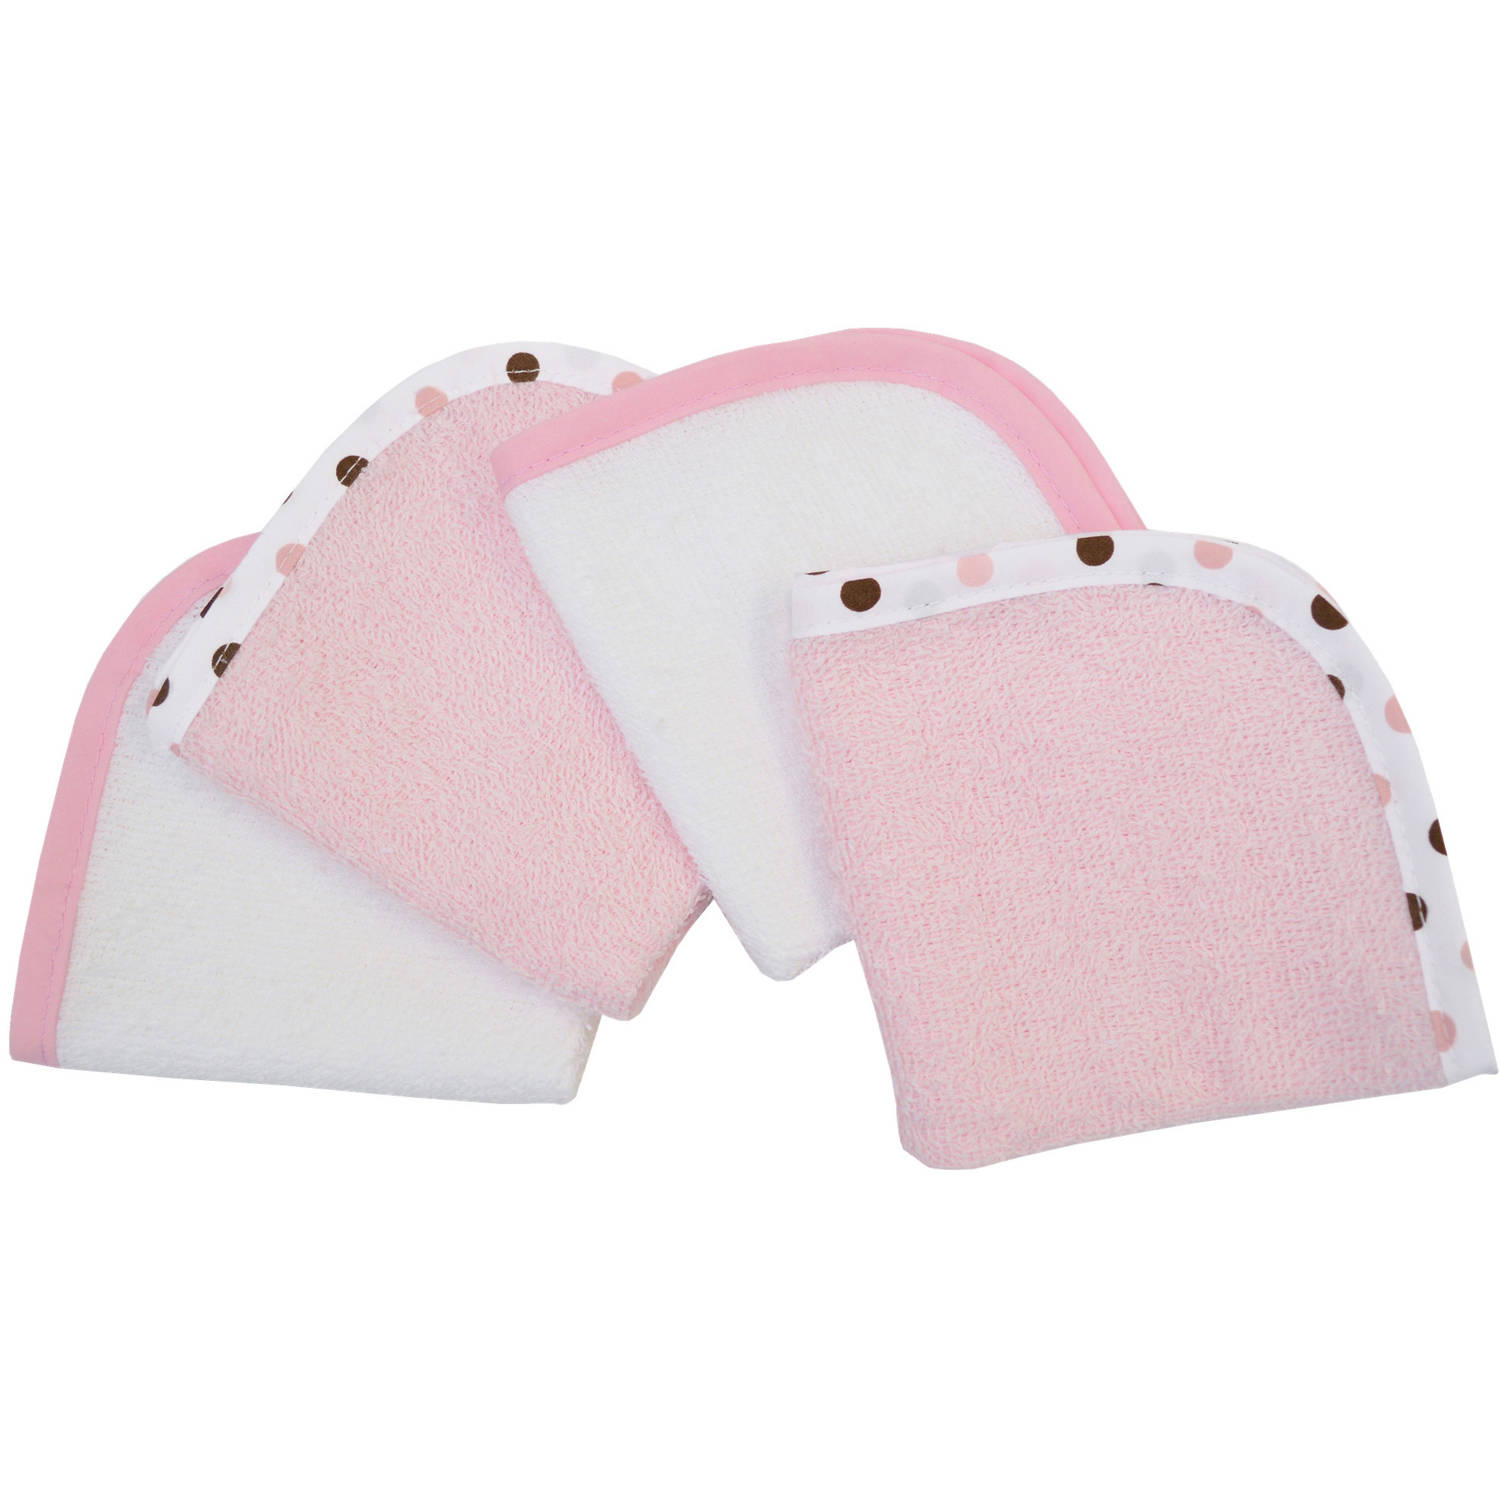 TL Care 4-Pack 100 Percent Organic Cotton Terry Washcloths, Pink